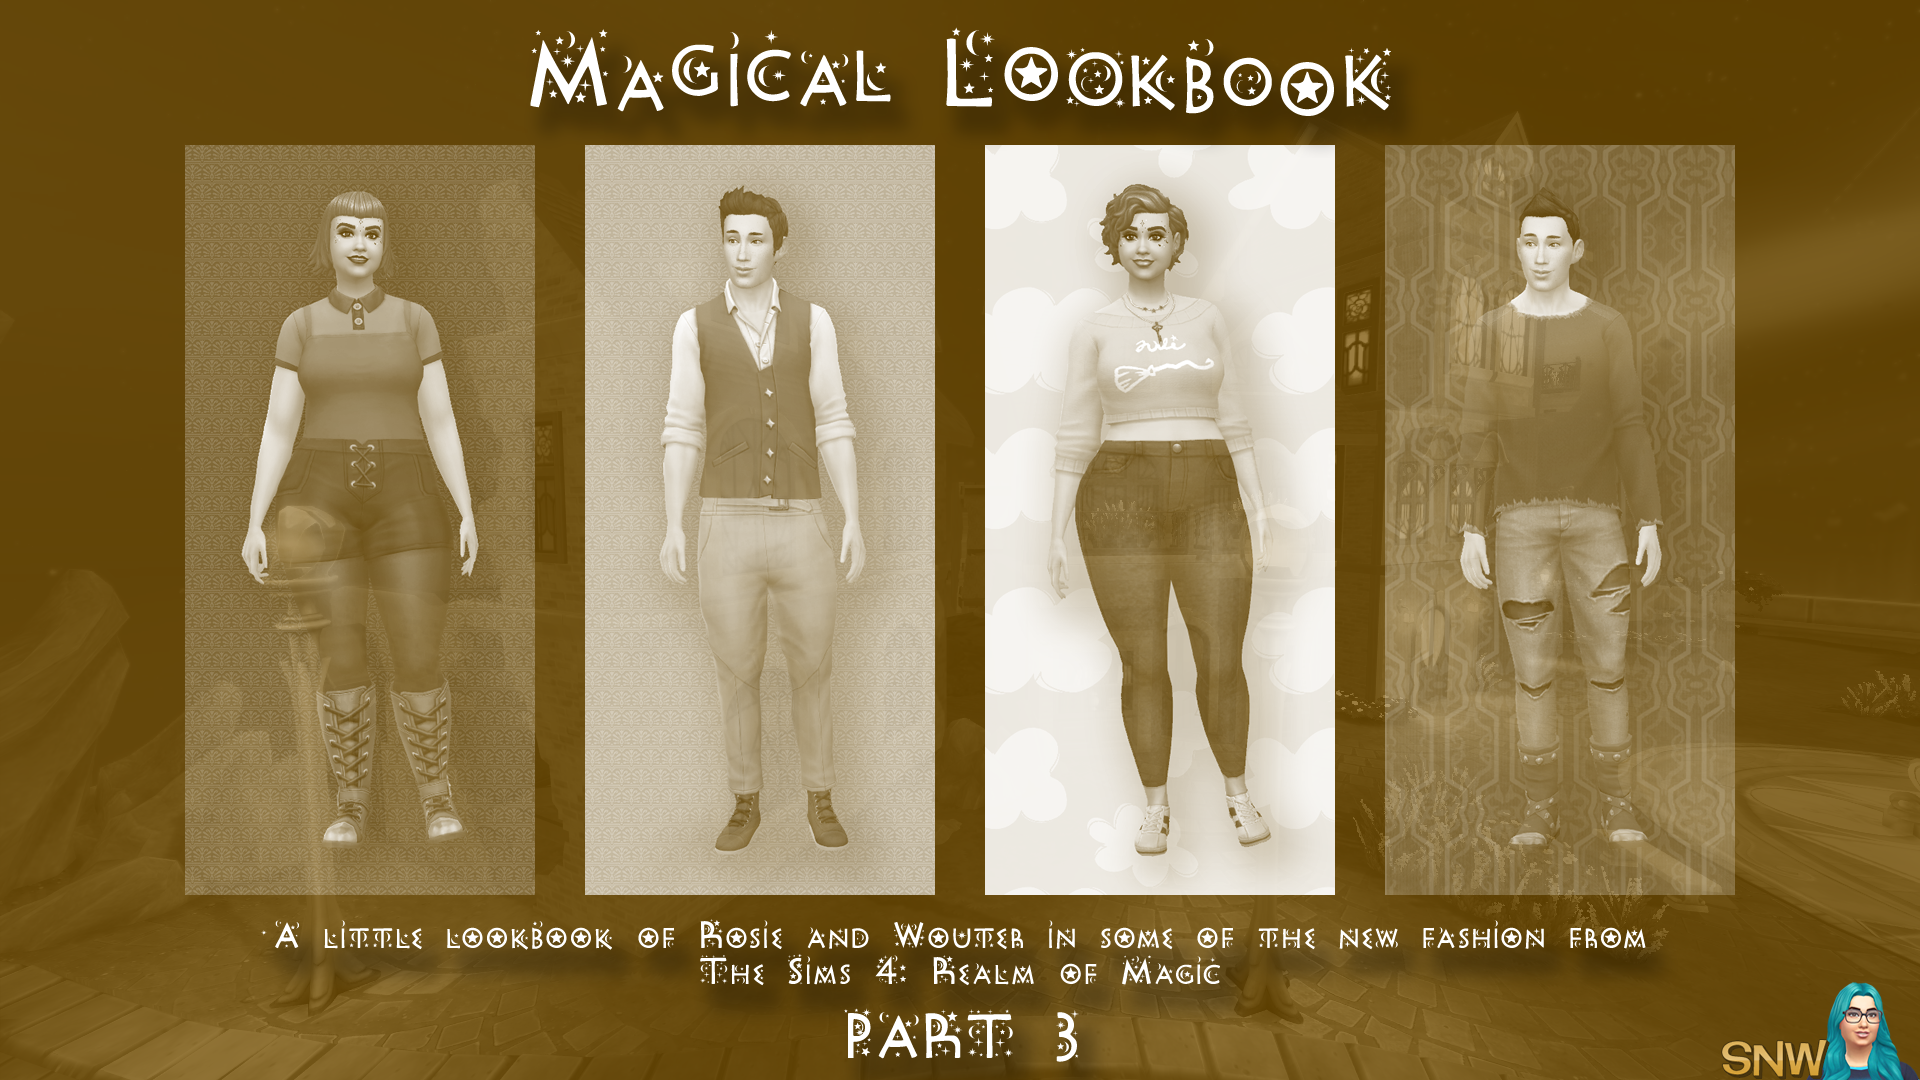 The Sims 4: Realm of Magic - A Little Lookbook by Rosie and Cheetah - Part 3